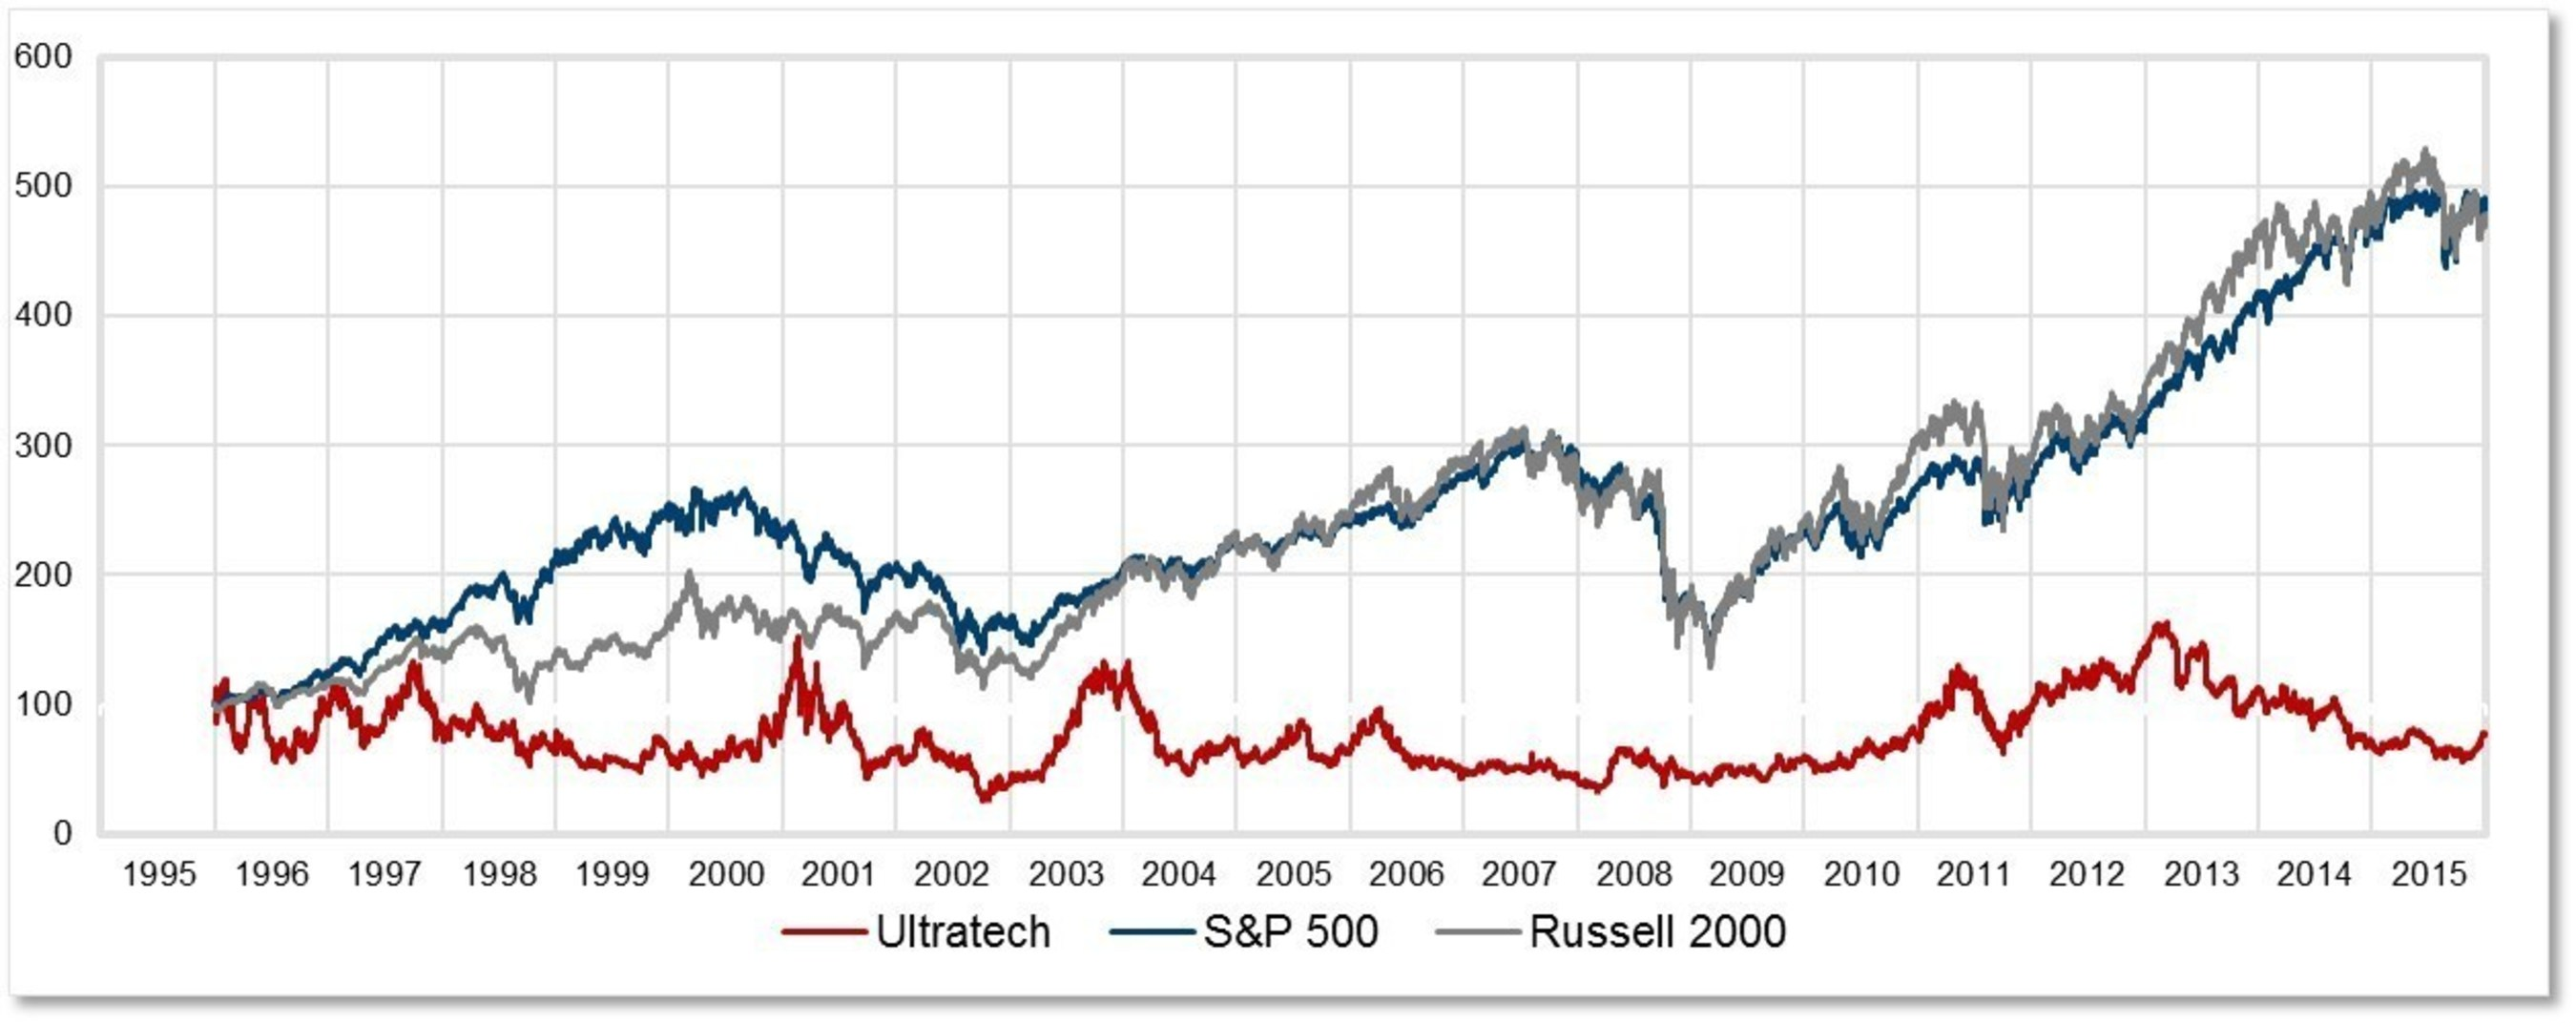 S&P 500, Russell 2000, Ultratech, Inc.